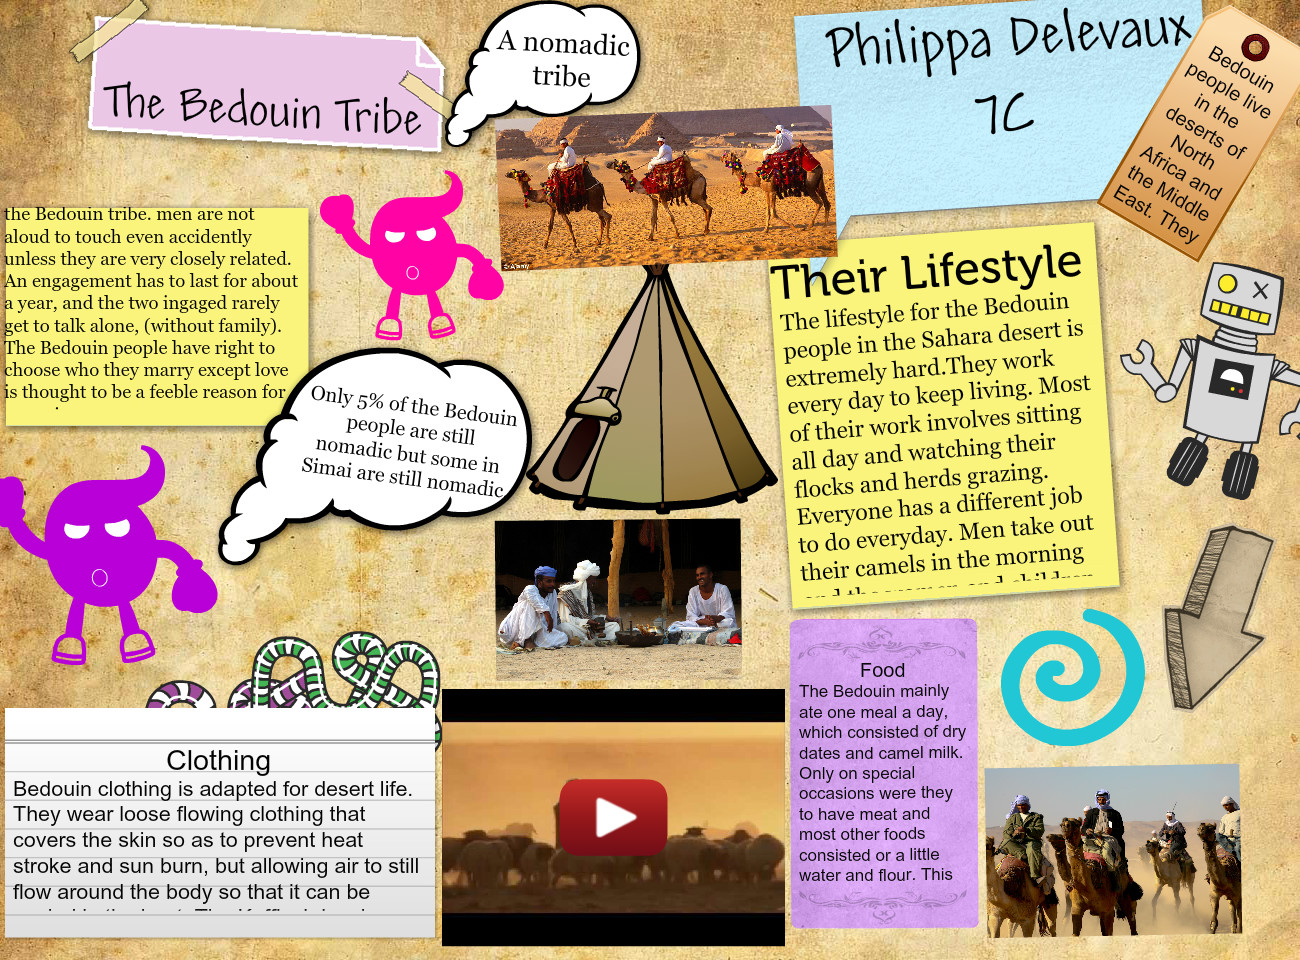 The Bedouin Tribe